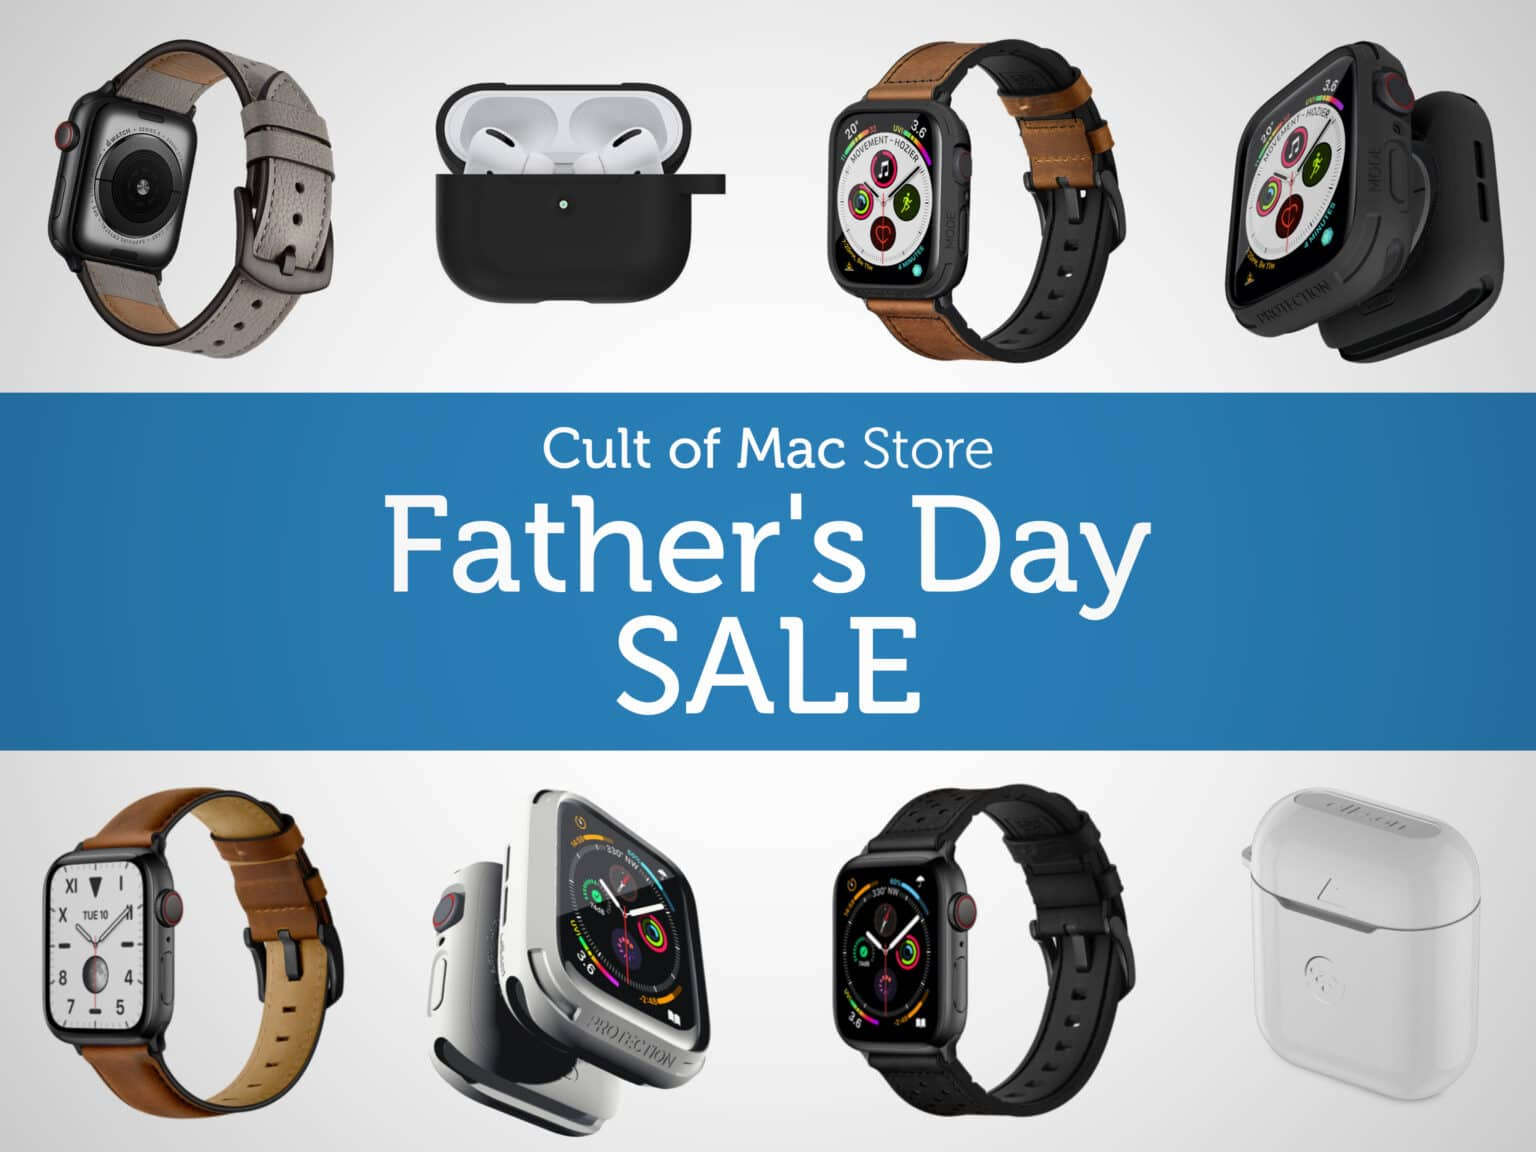 Cult of Mac Store Father's Day sale